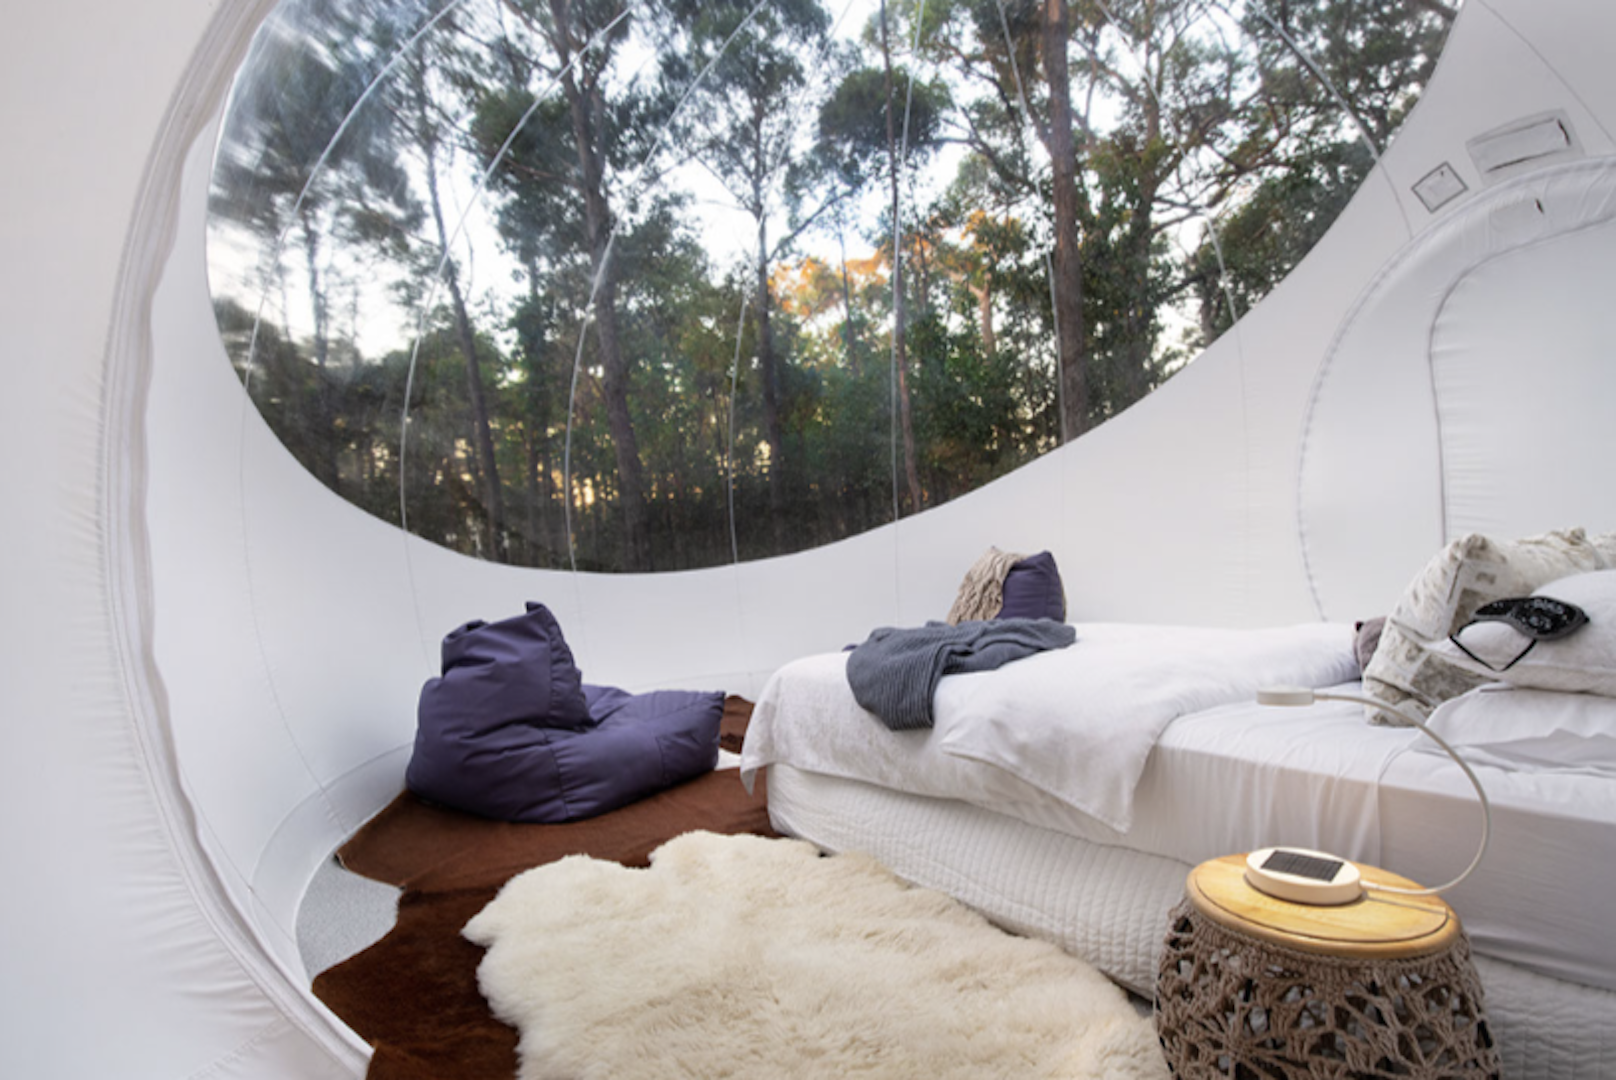 Skyview Bubble Tent Daylesford